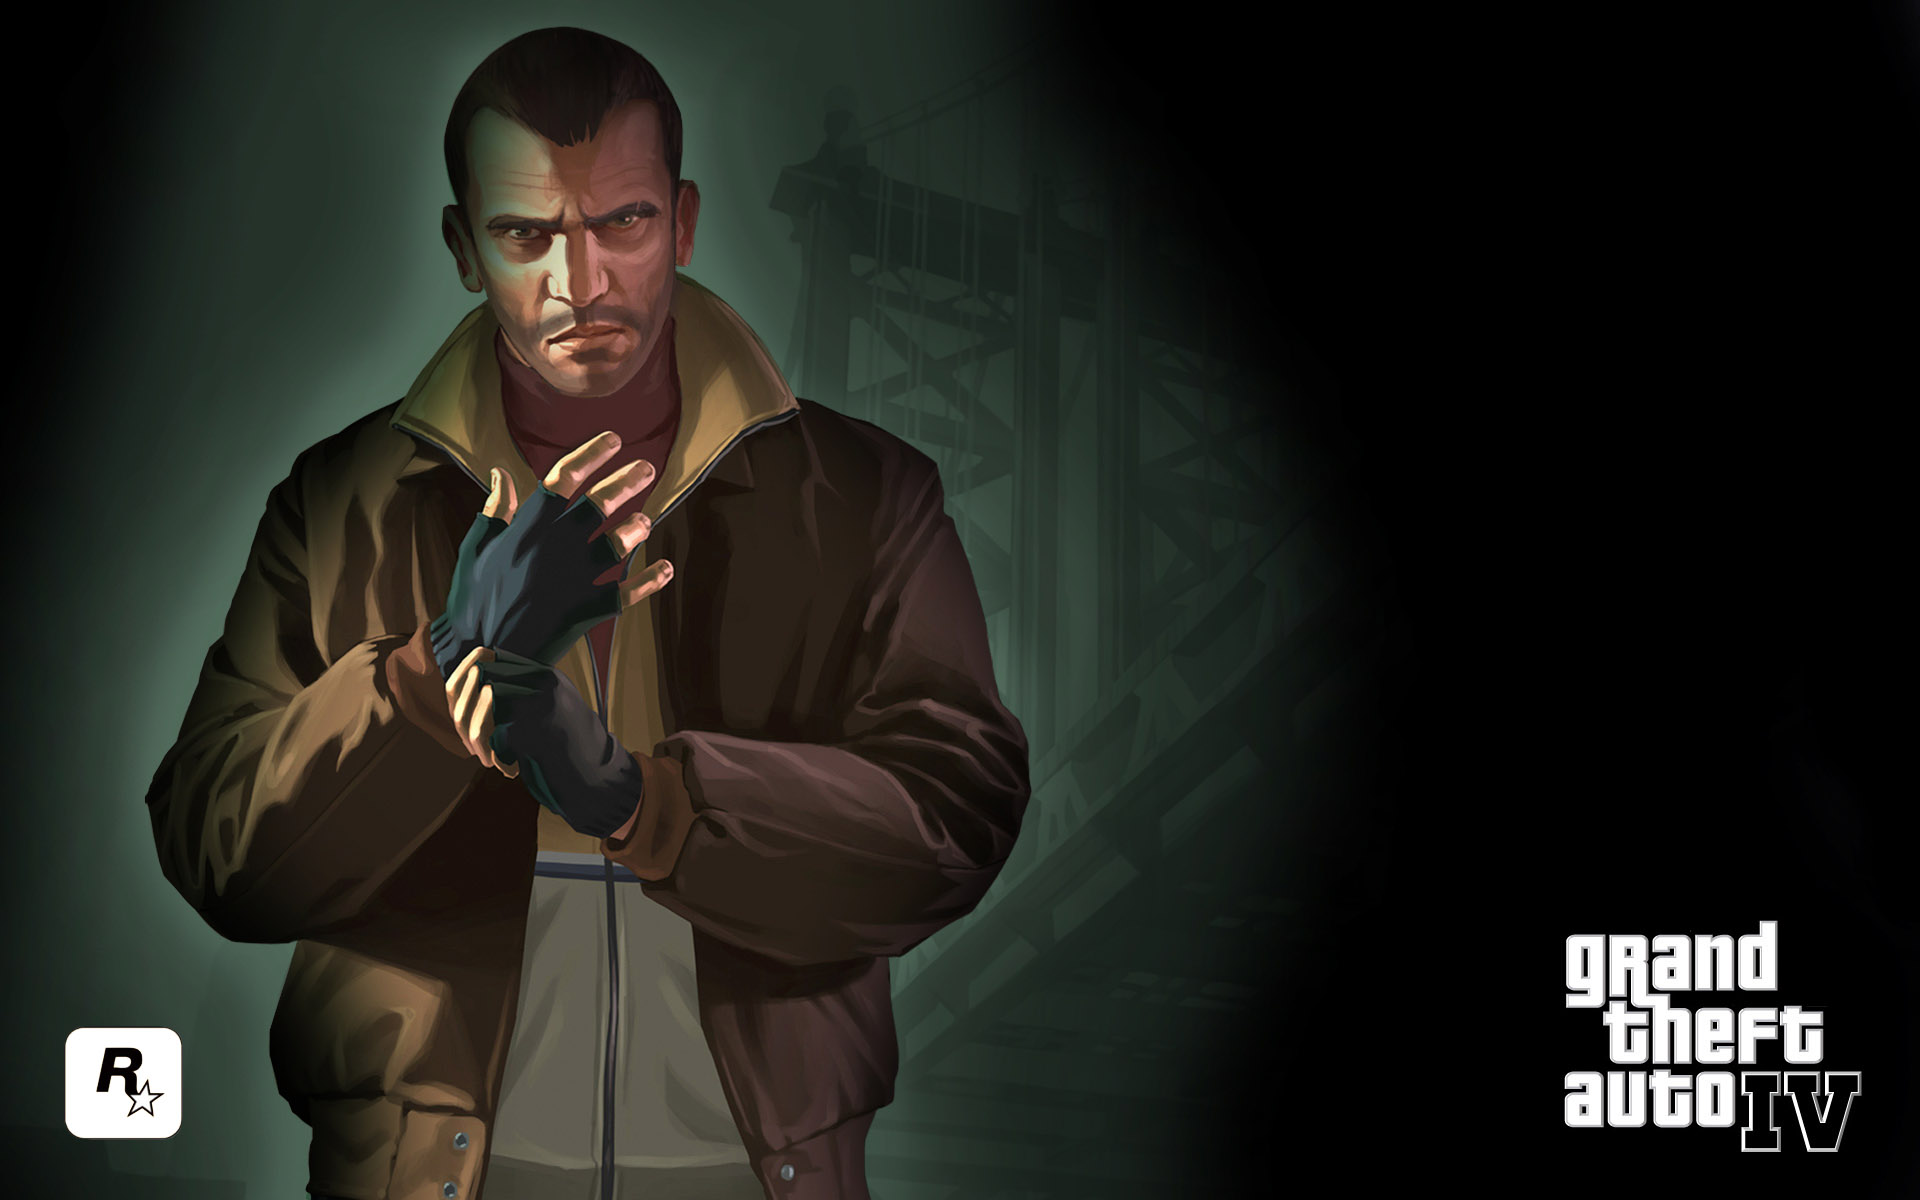 Clearing Up the Myths about Grand Theft Auto